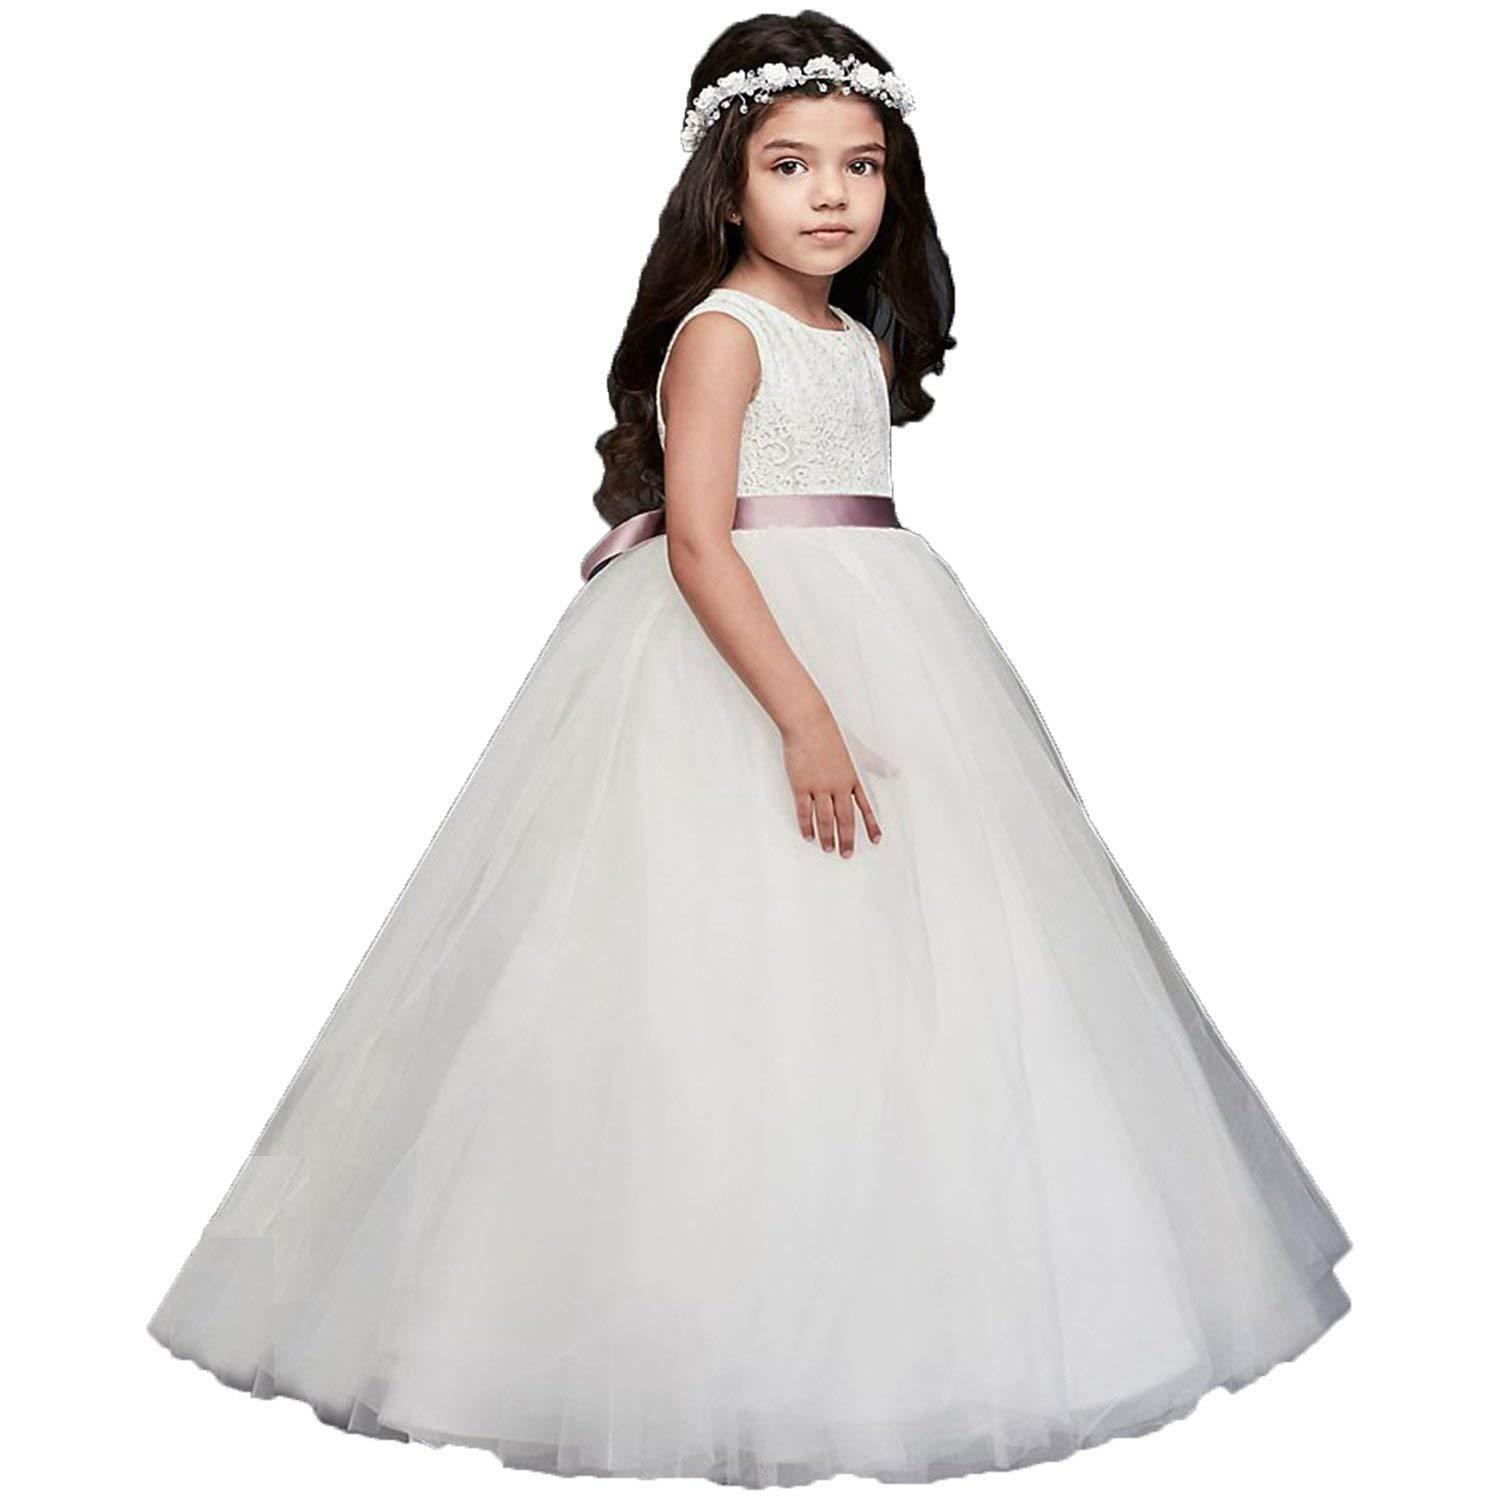 6cfef6e8969a Ivory Fancy Lace Flower Girl Dress with Heart Cutout On Back 2-14 ...